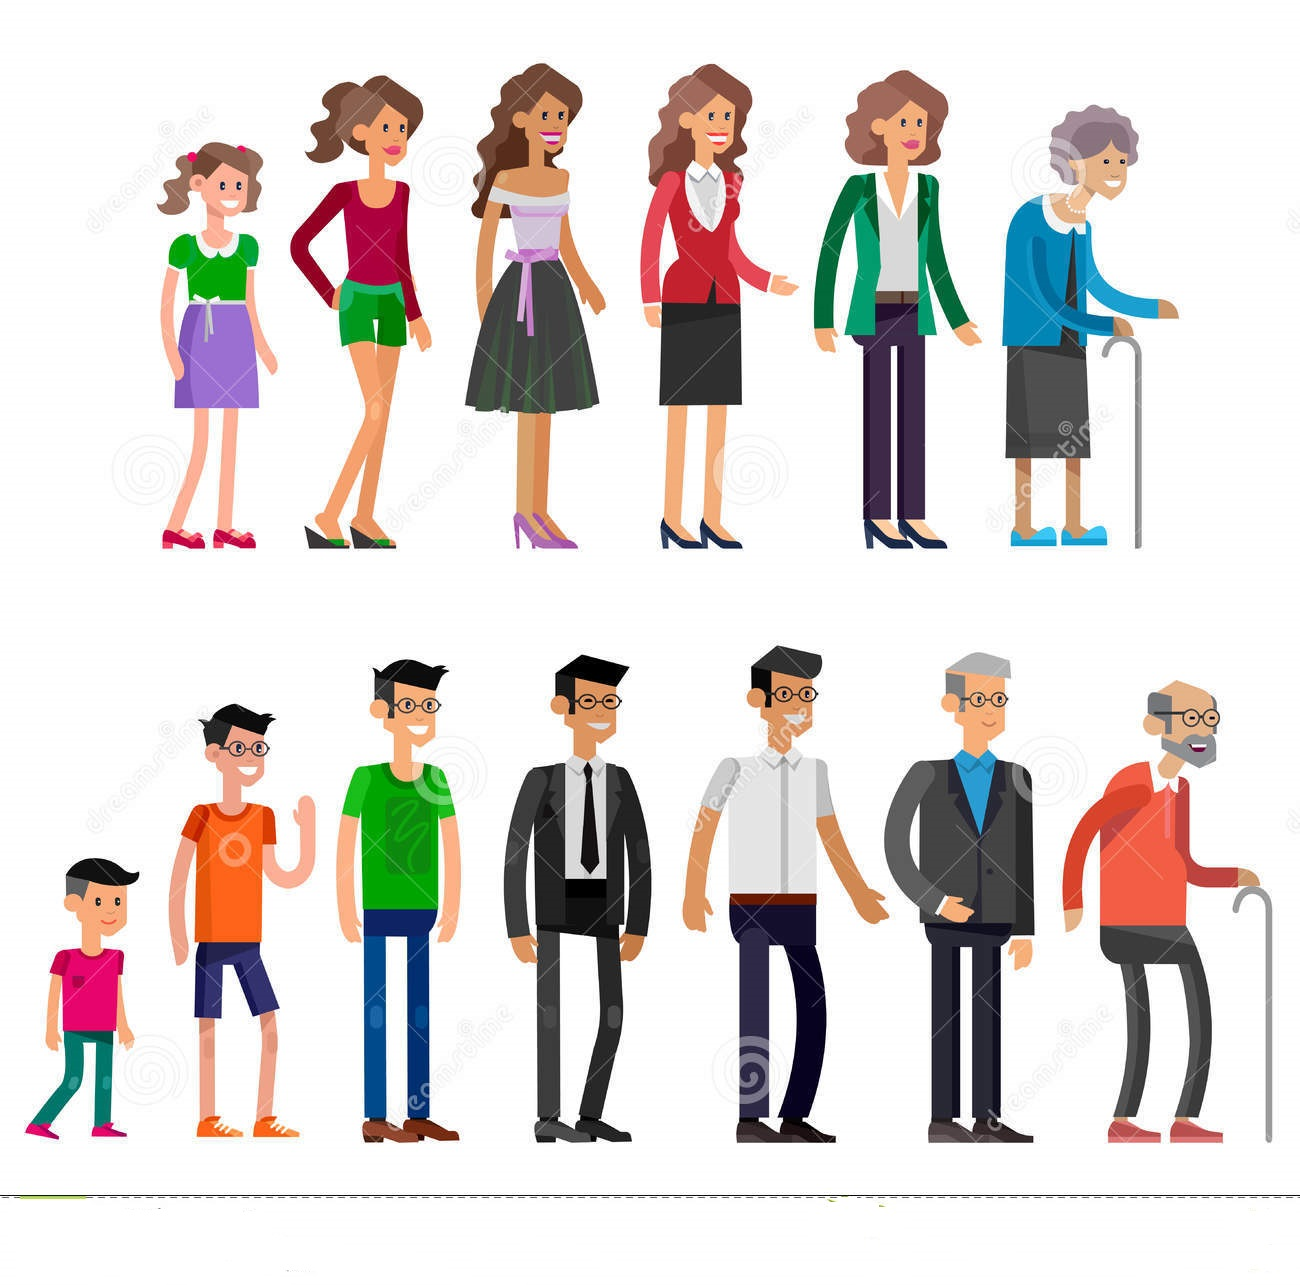 generations-woman-all-age-categories-detailed-characters-people-isolated-white-background-men-infancy-childhood-adolescence-72902808